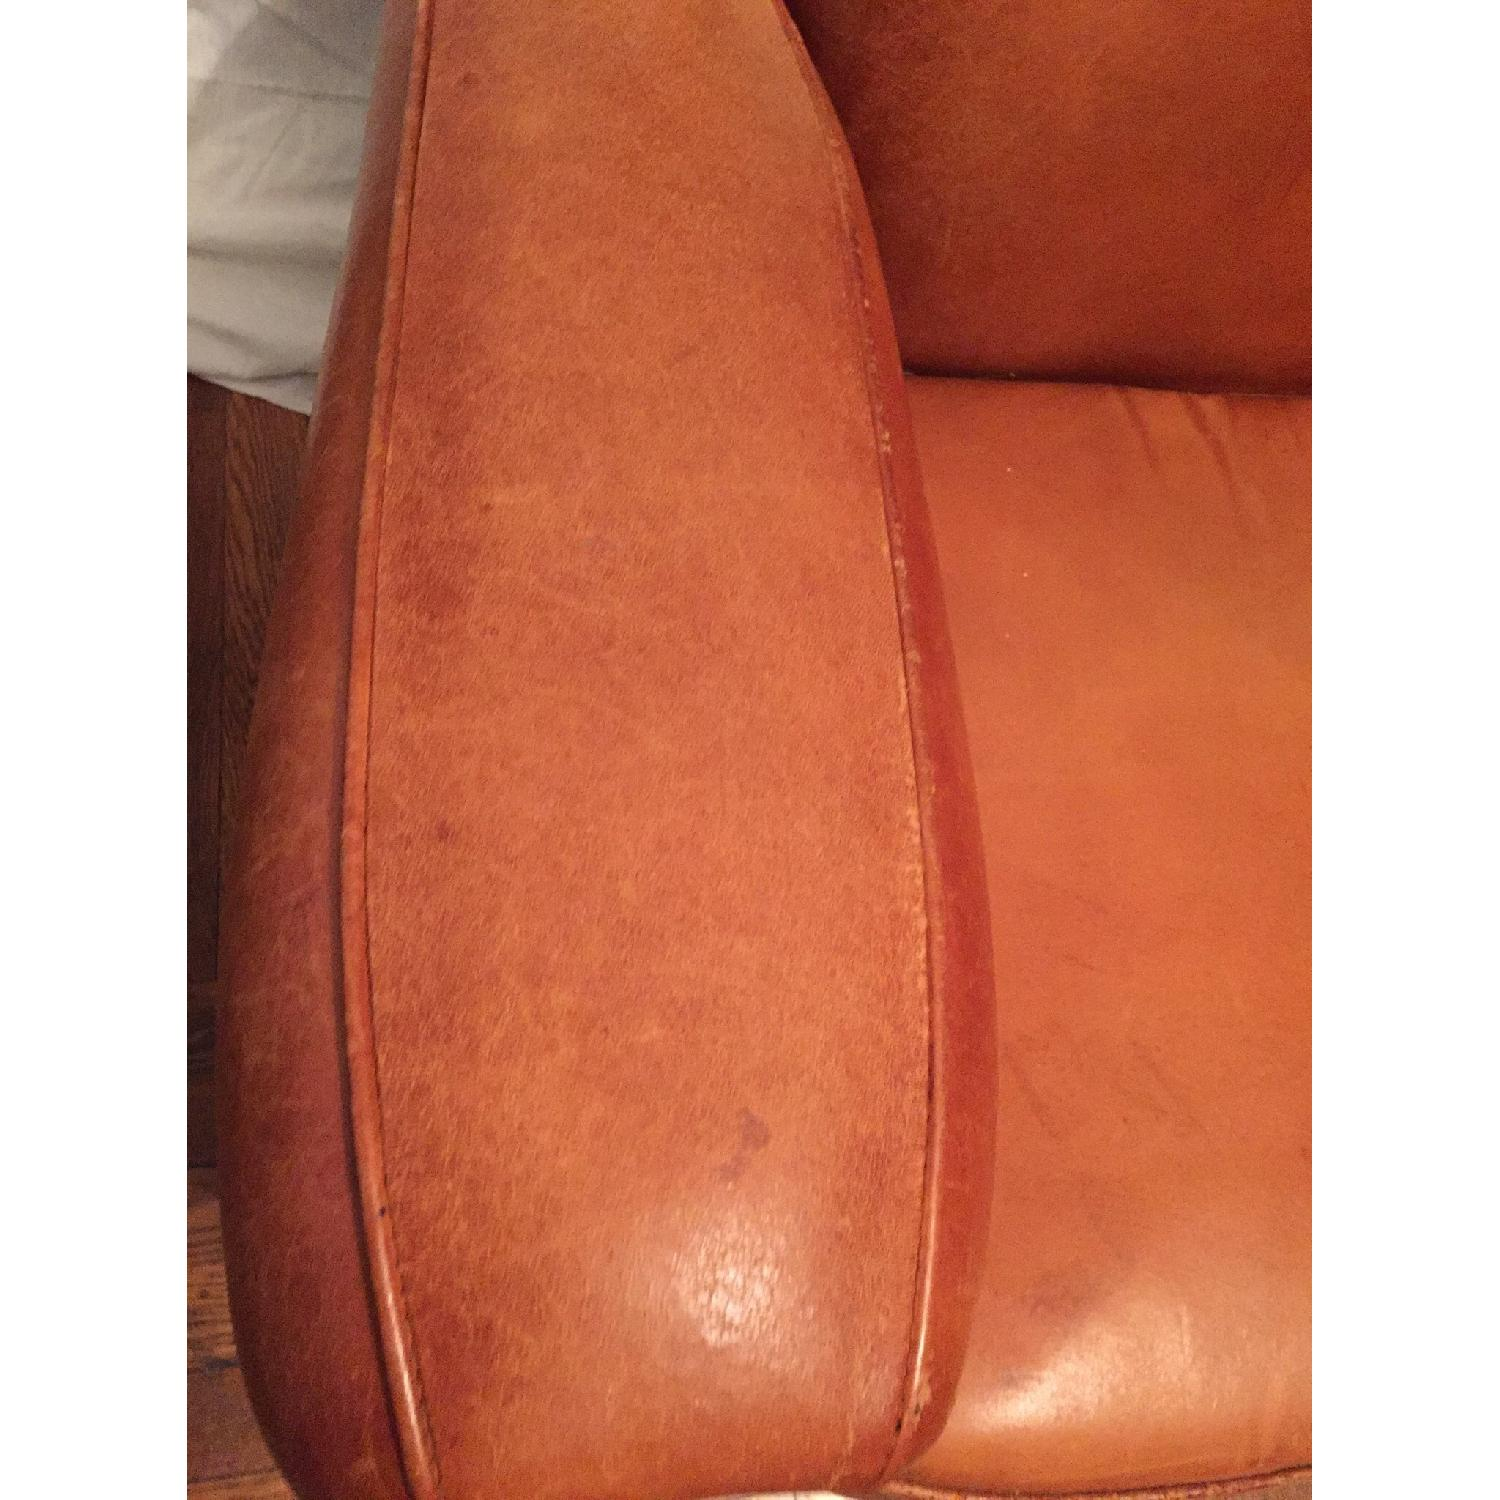 Portico Leather Club Chair - image-10